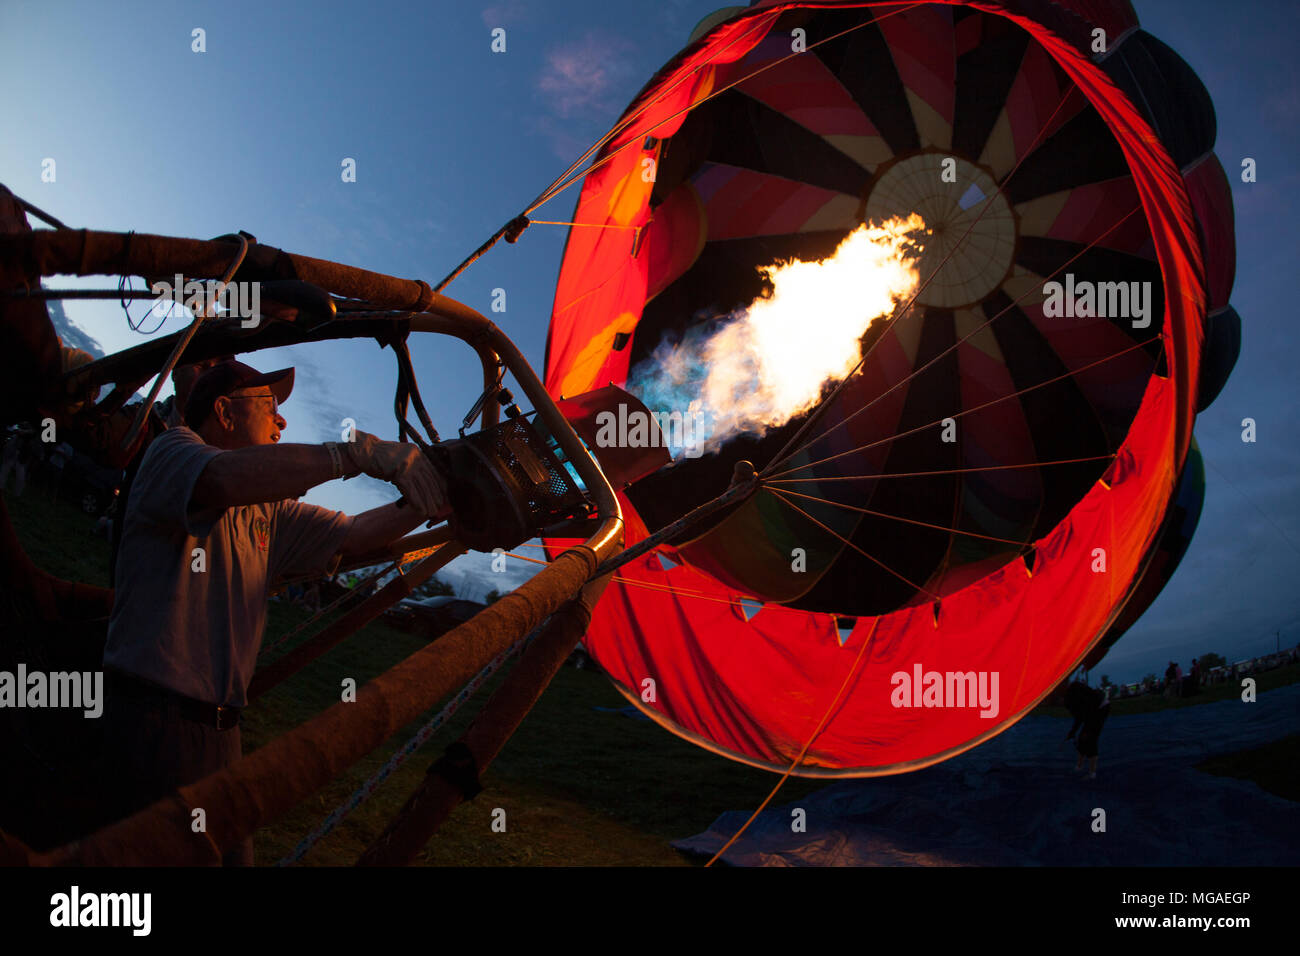 delighted hot air balloon pilot heating his balloon for an evening's glow activity heating - Stock Image